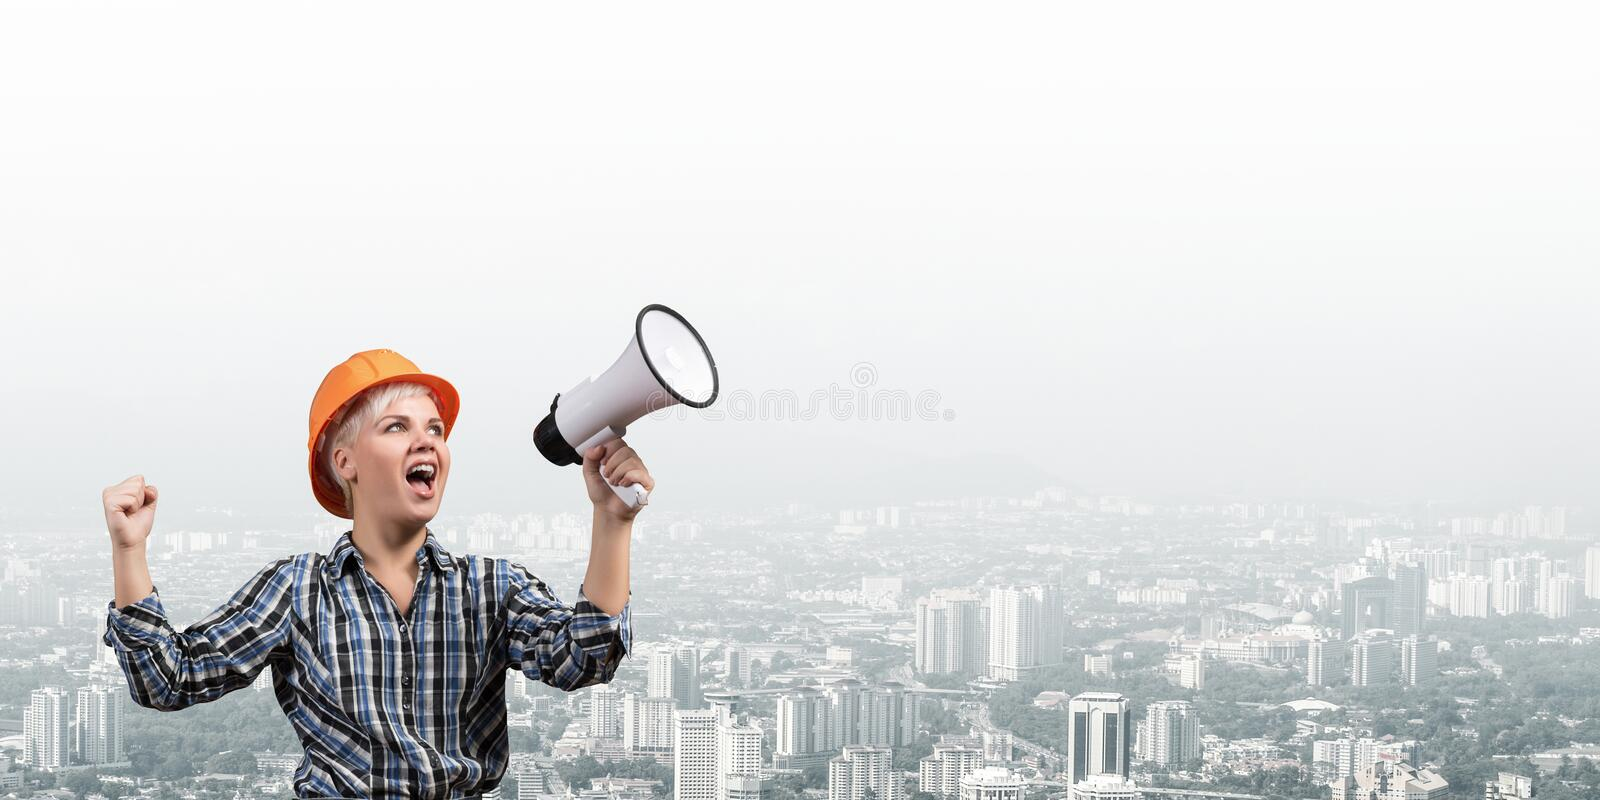 Expressive woman in helmet shouting into megaphone royalty free stock image